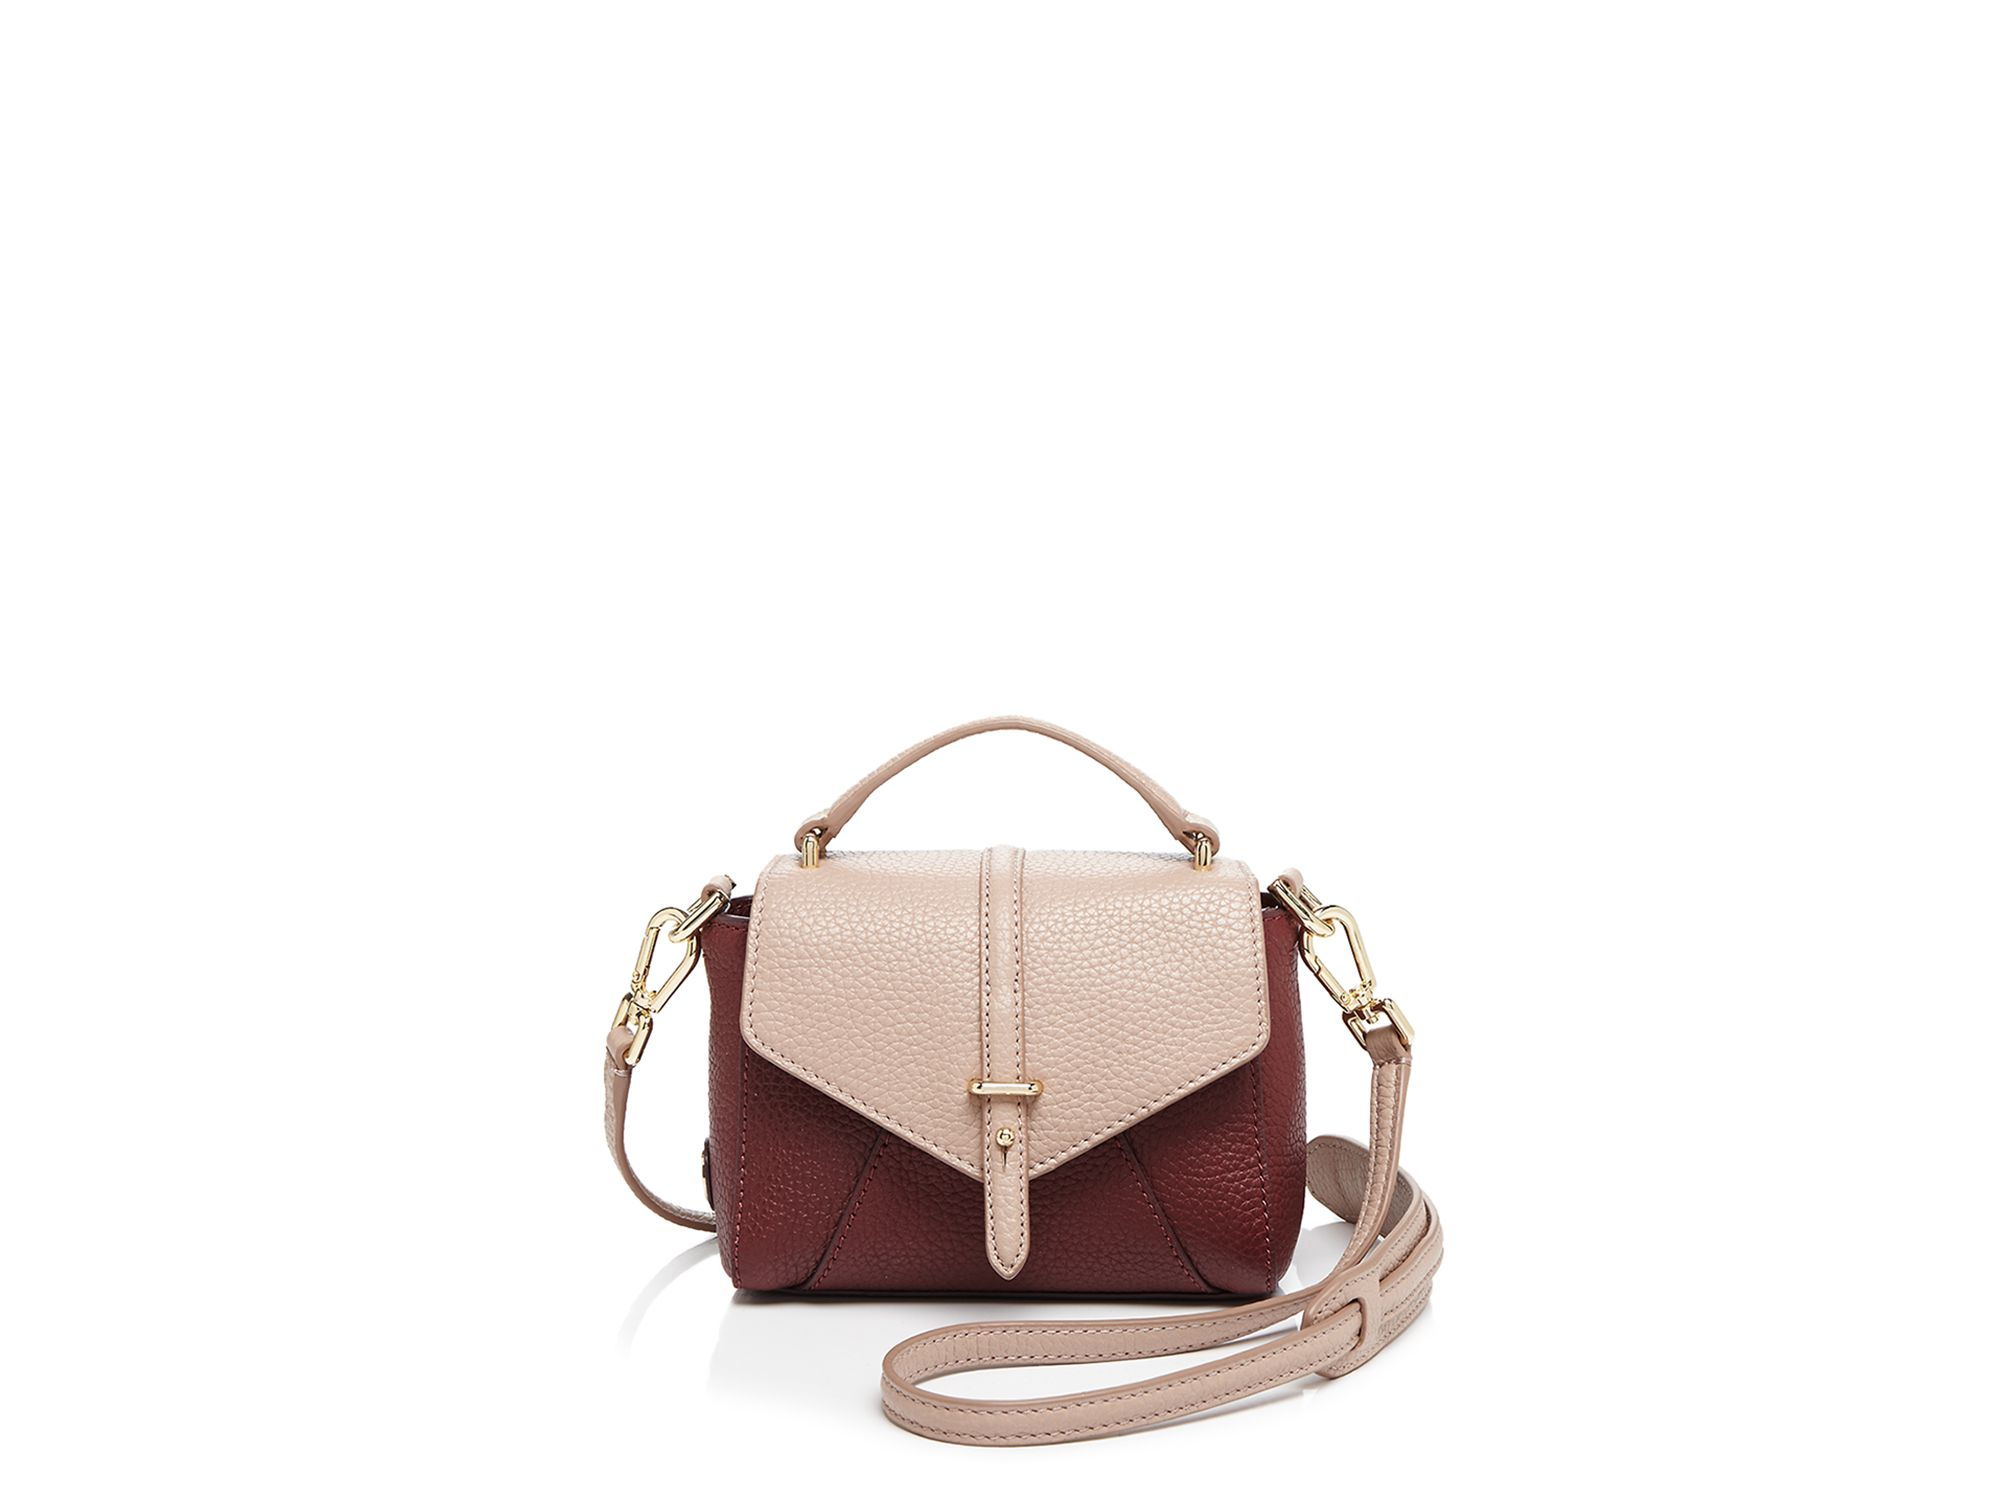 0f6e07224c7a Lyst - Tory Burch Satchel - 797 Tiny Color Block in Brown